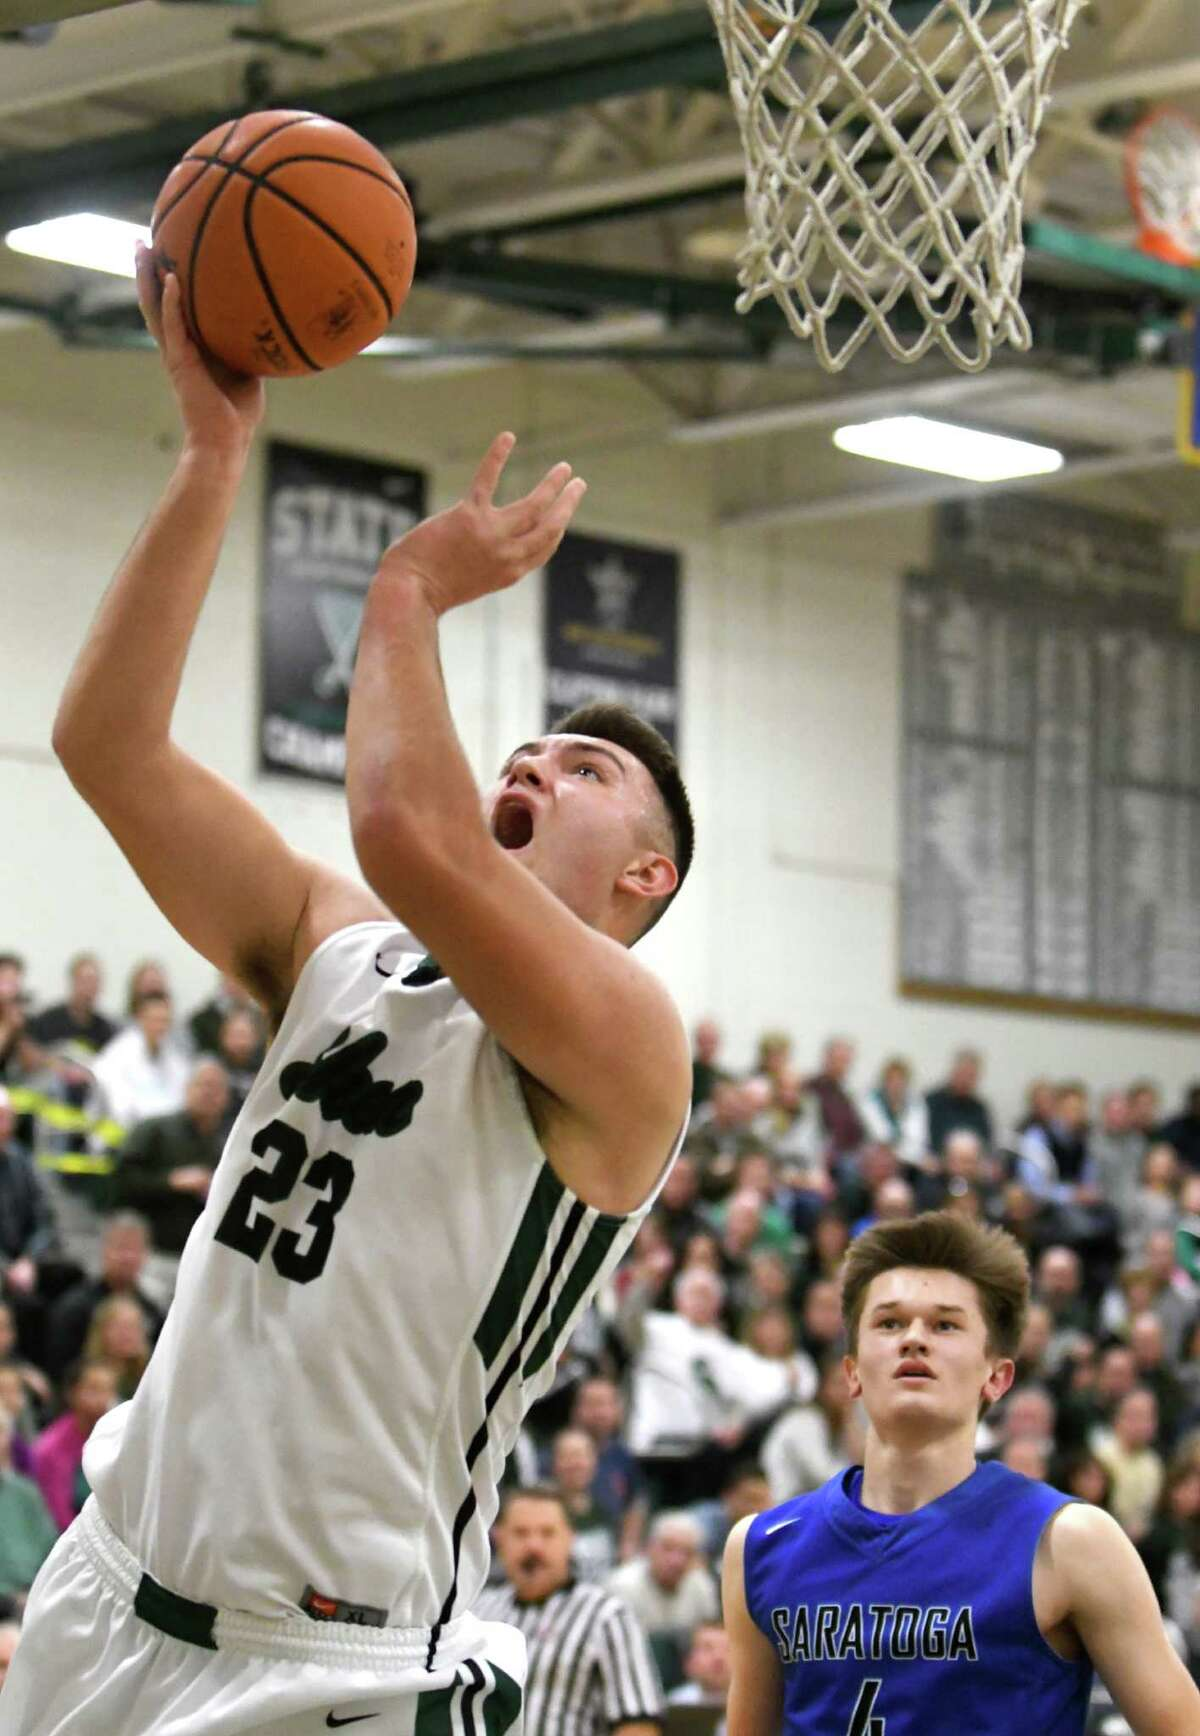 Shen's Mike Pizziketti puts up a shot during their boy's high school basketball game against Saratoga on Wednesday Dec. 21, 2016 in Clifton Park, N.Y. (Michael P. Farrell/Times Union)